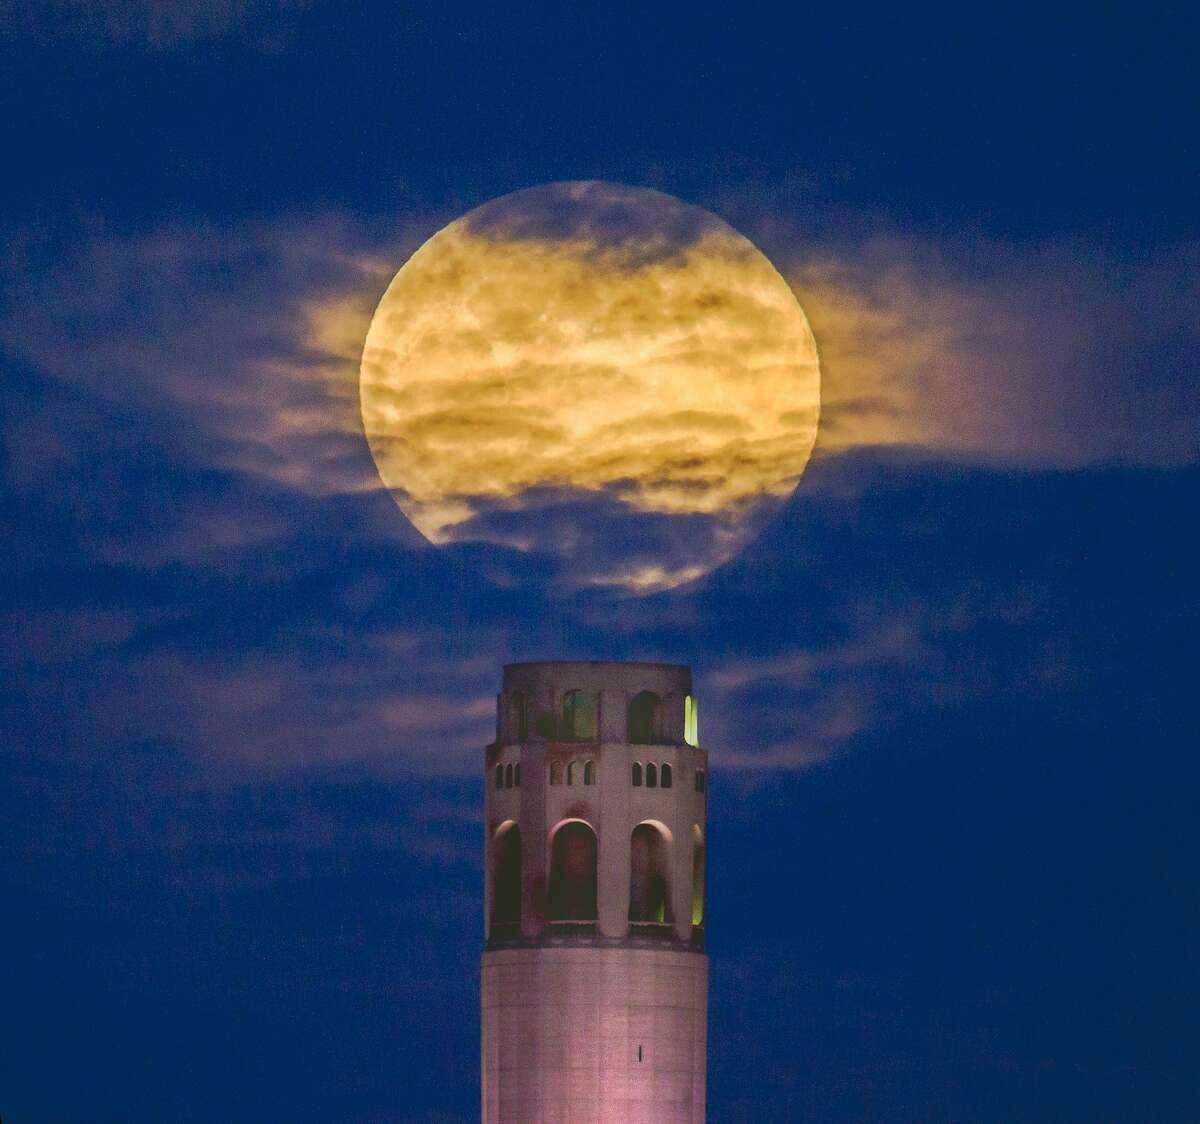 Frederic Larson, @mysticalphoto, photographed April's supermoon in the night sky over Coit Tower in San Francisco on Monday evening, April 26, 2021.